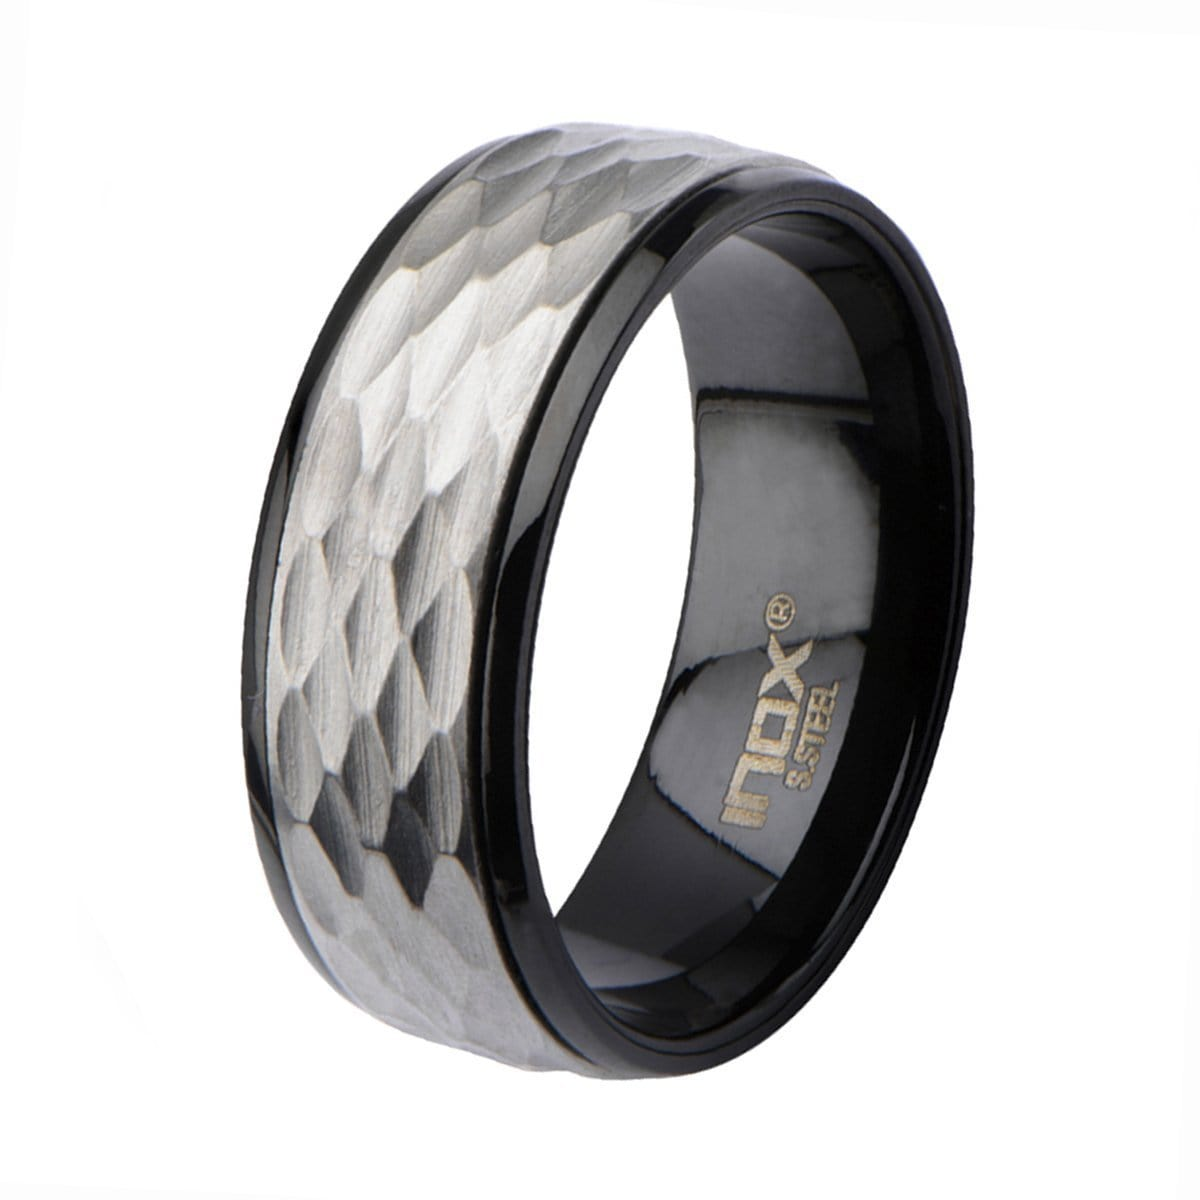 Black & Silver Stainless Steel Dented Easy-Grip Spinner Ring - Inox Jewelry India